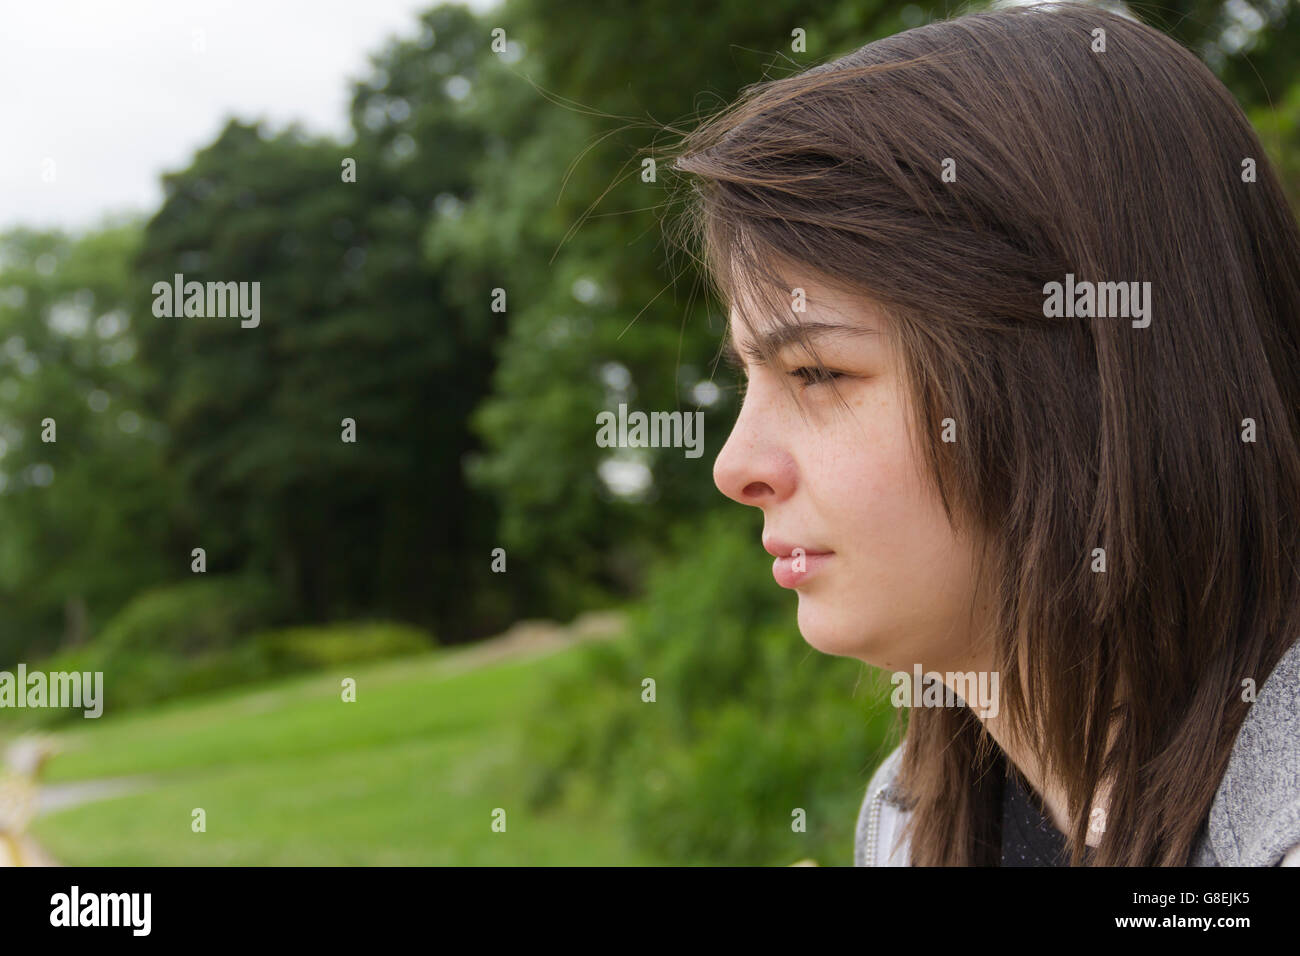 Young woman, adult or late teens, seated in park with a solemn or neutral expression on her face. - Stock Image